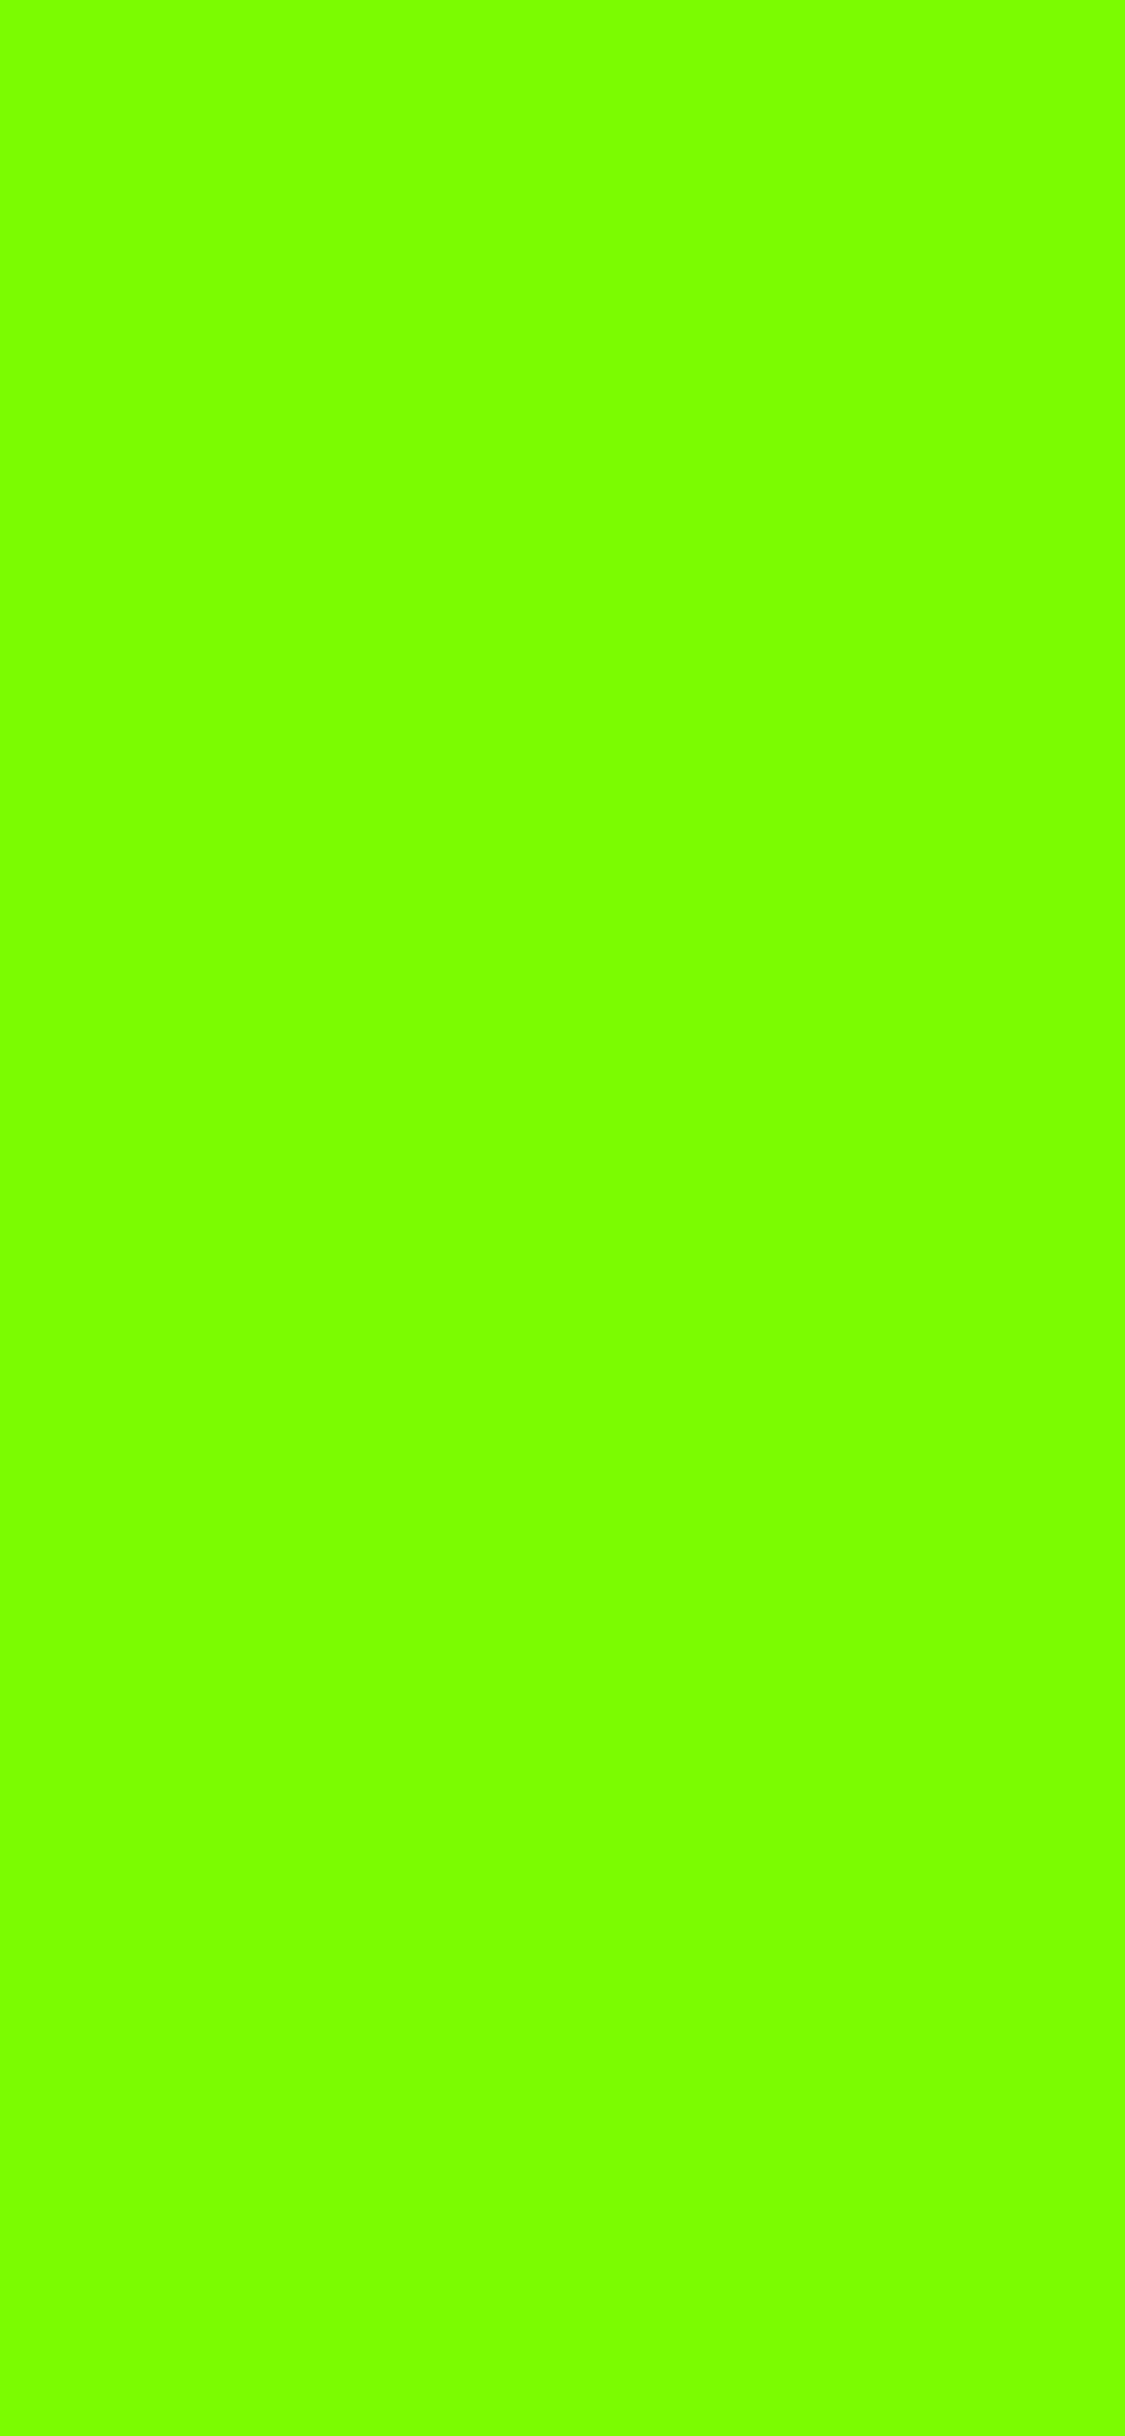 1125x2436 Lawn Green Solid Color Background